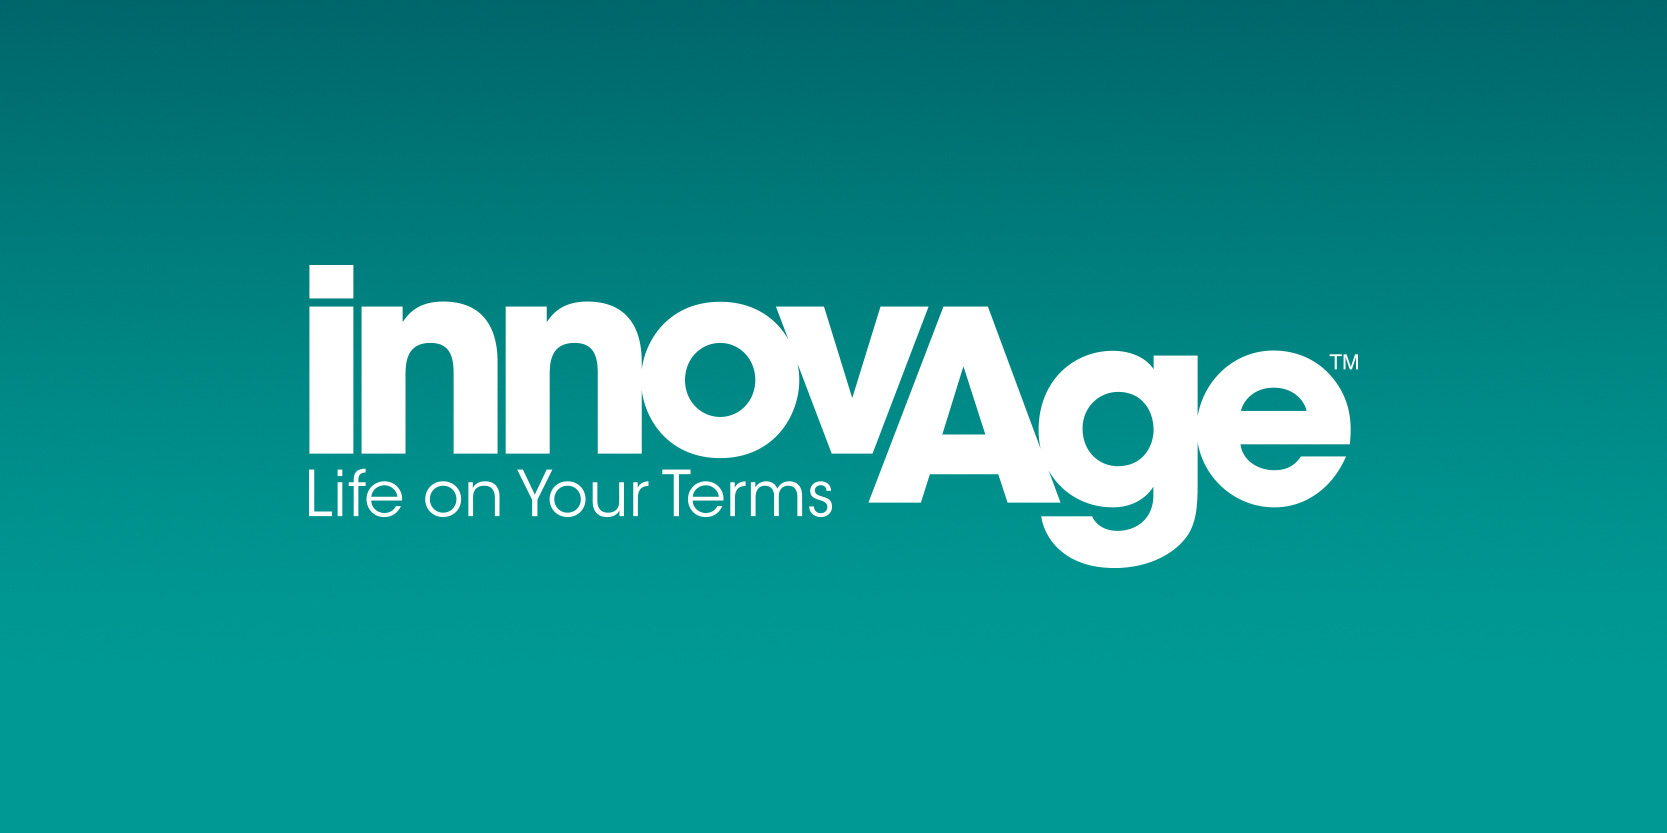 Innovative, new design for the Innovage logo.